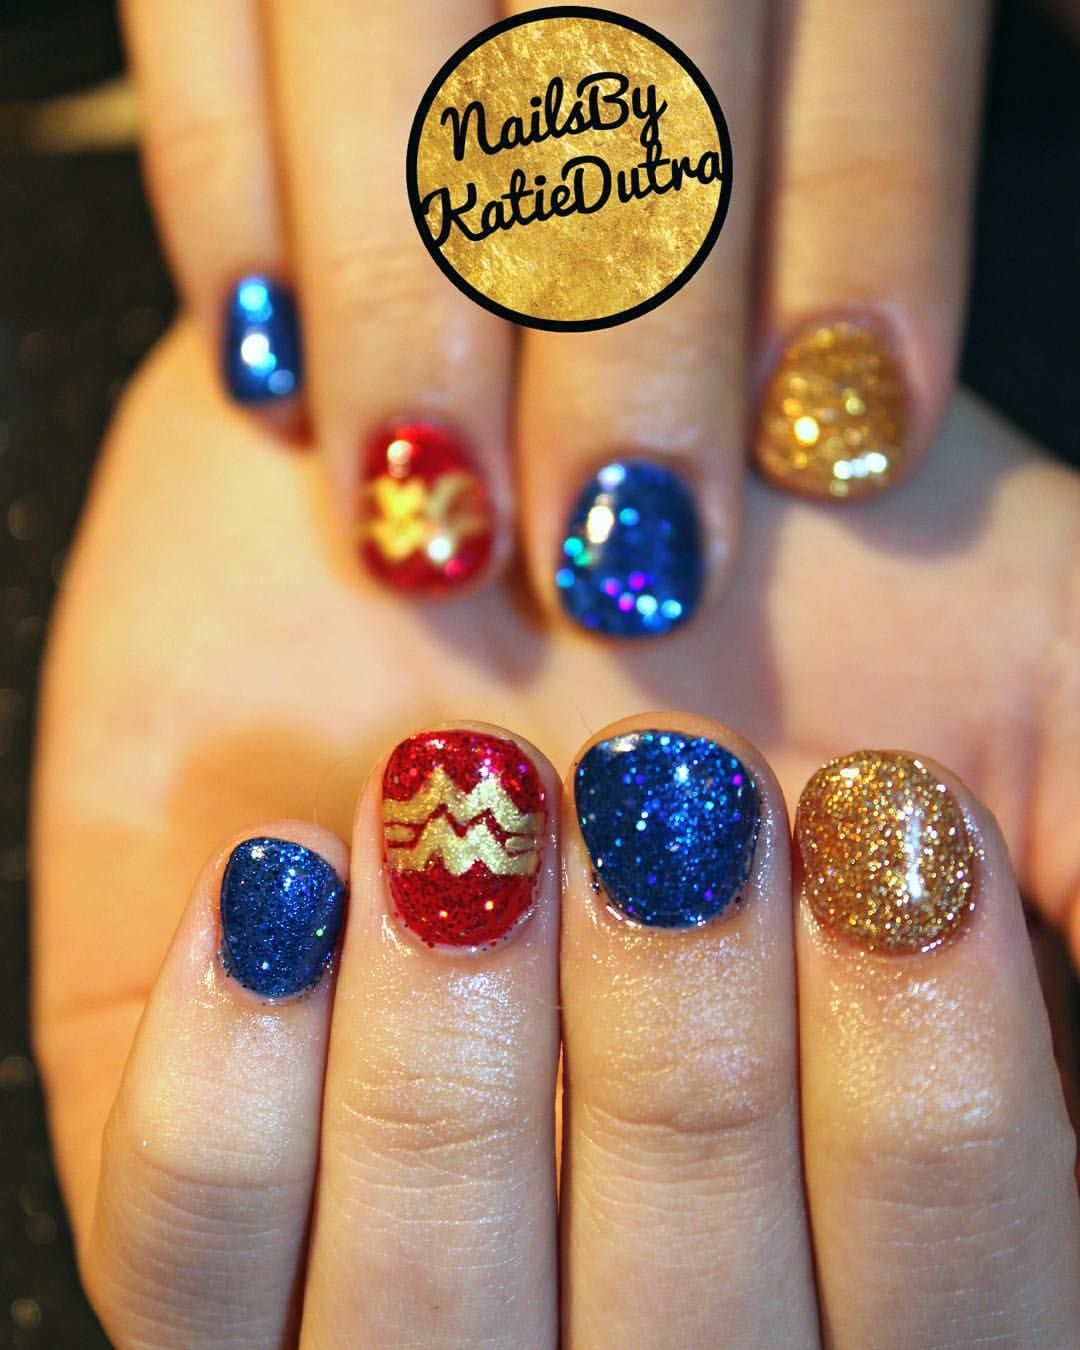 Glitter gel nails Wonder Woman nail art | Nails by Katie Dutra ...